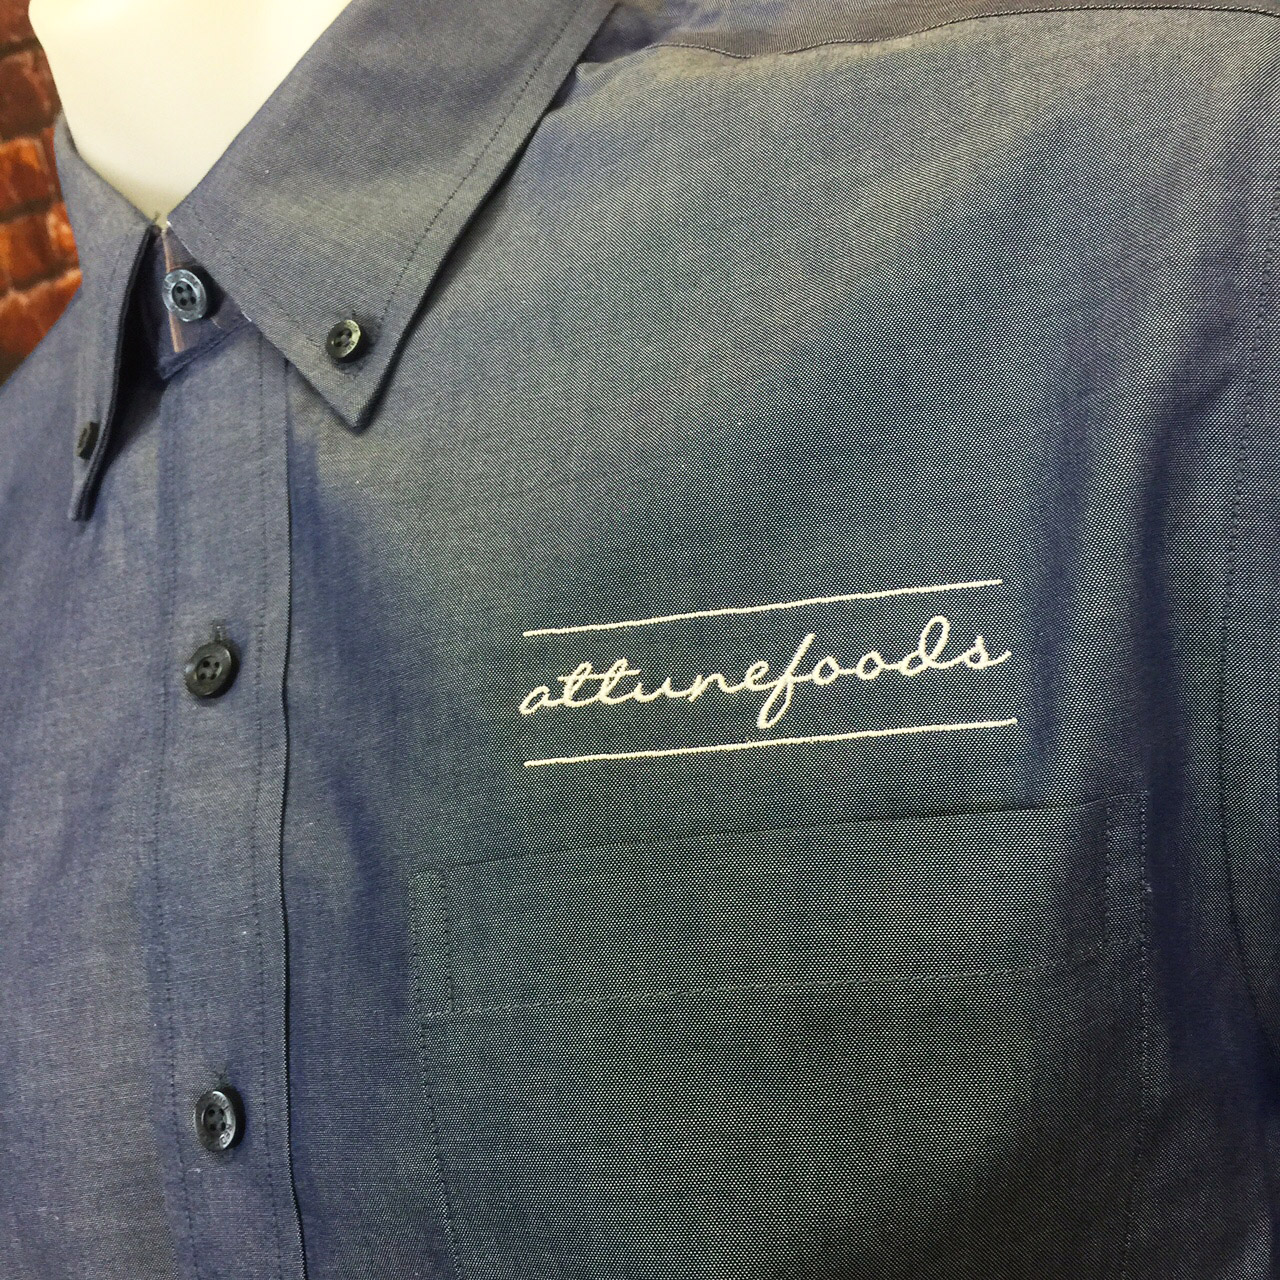 Attune Foods Embroidery.jpg